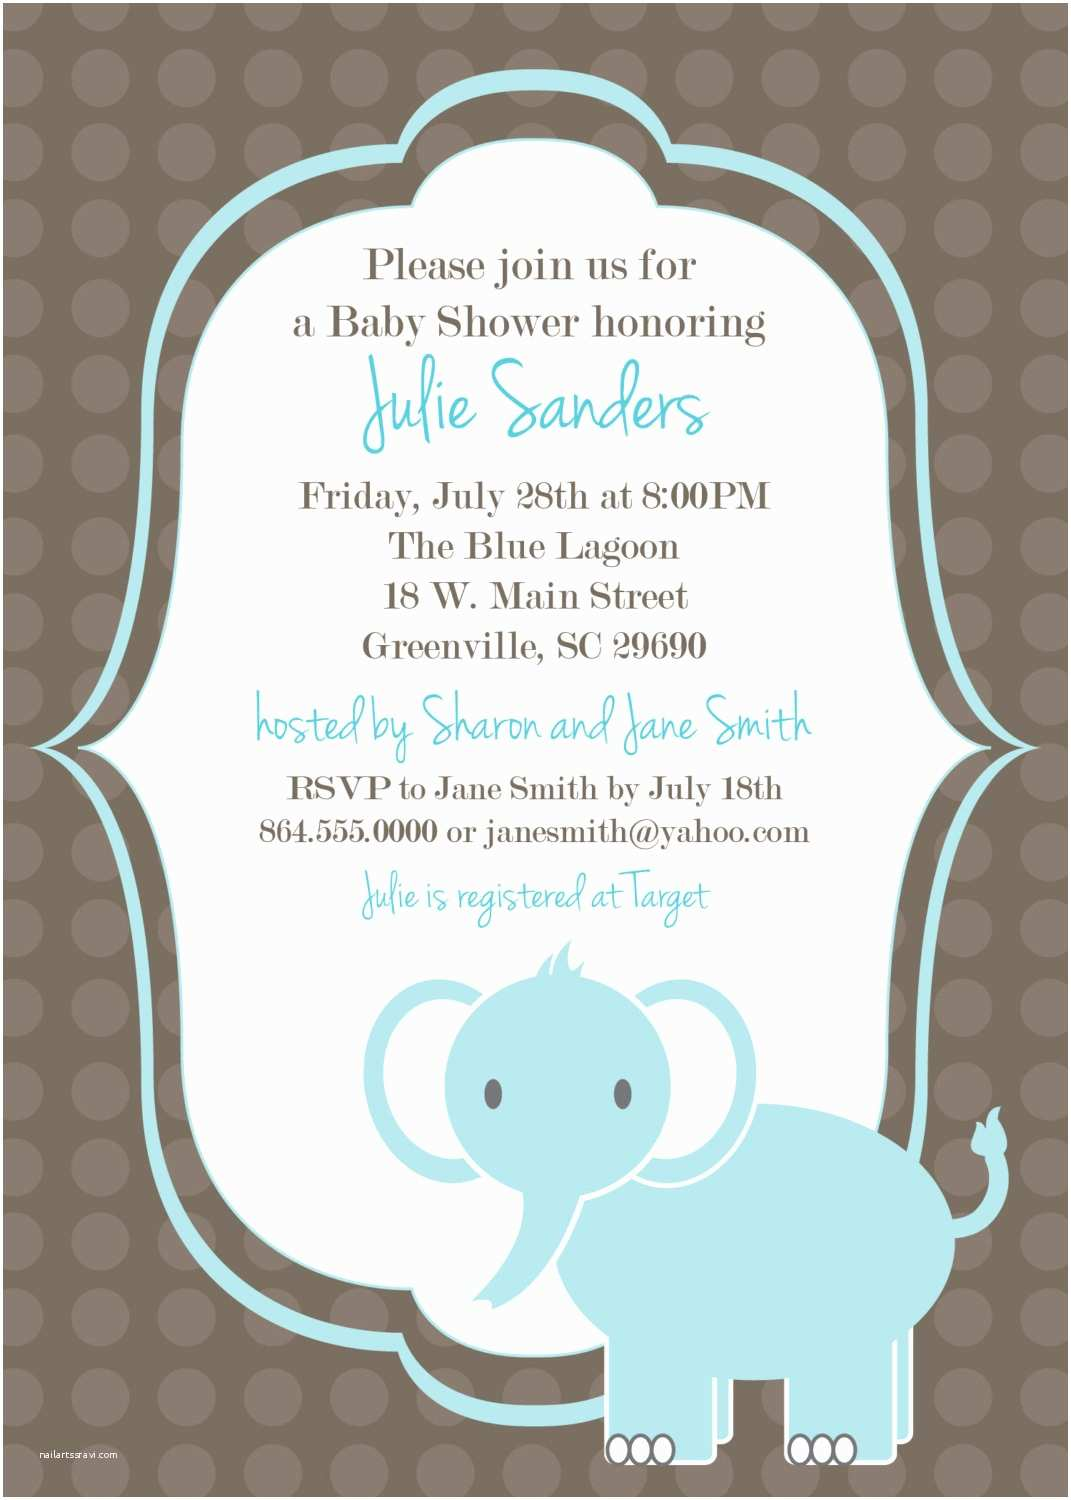 Downloadable Baby Shower Invitations Printable Baby Shower Invitation Lephant Boy By Ohcreative